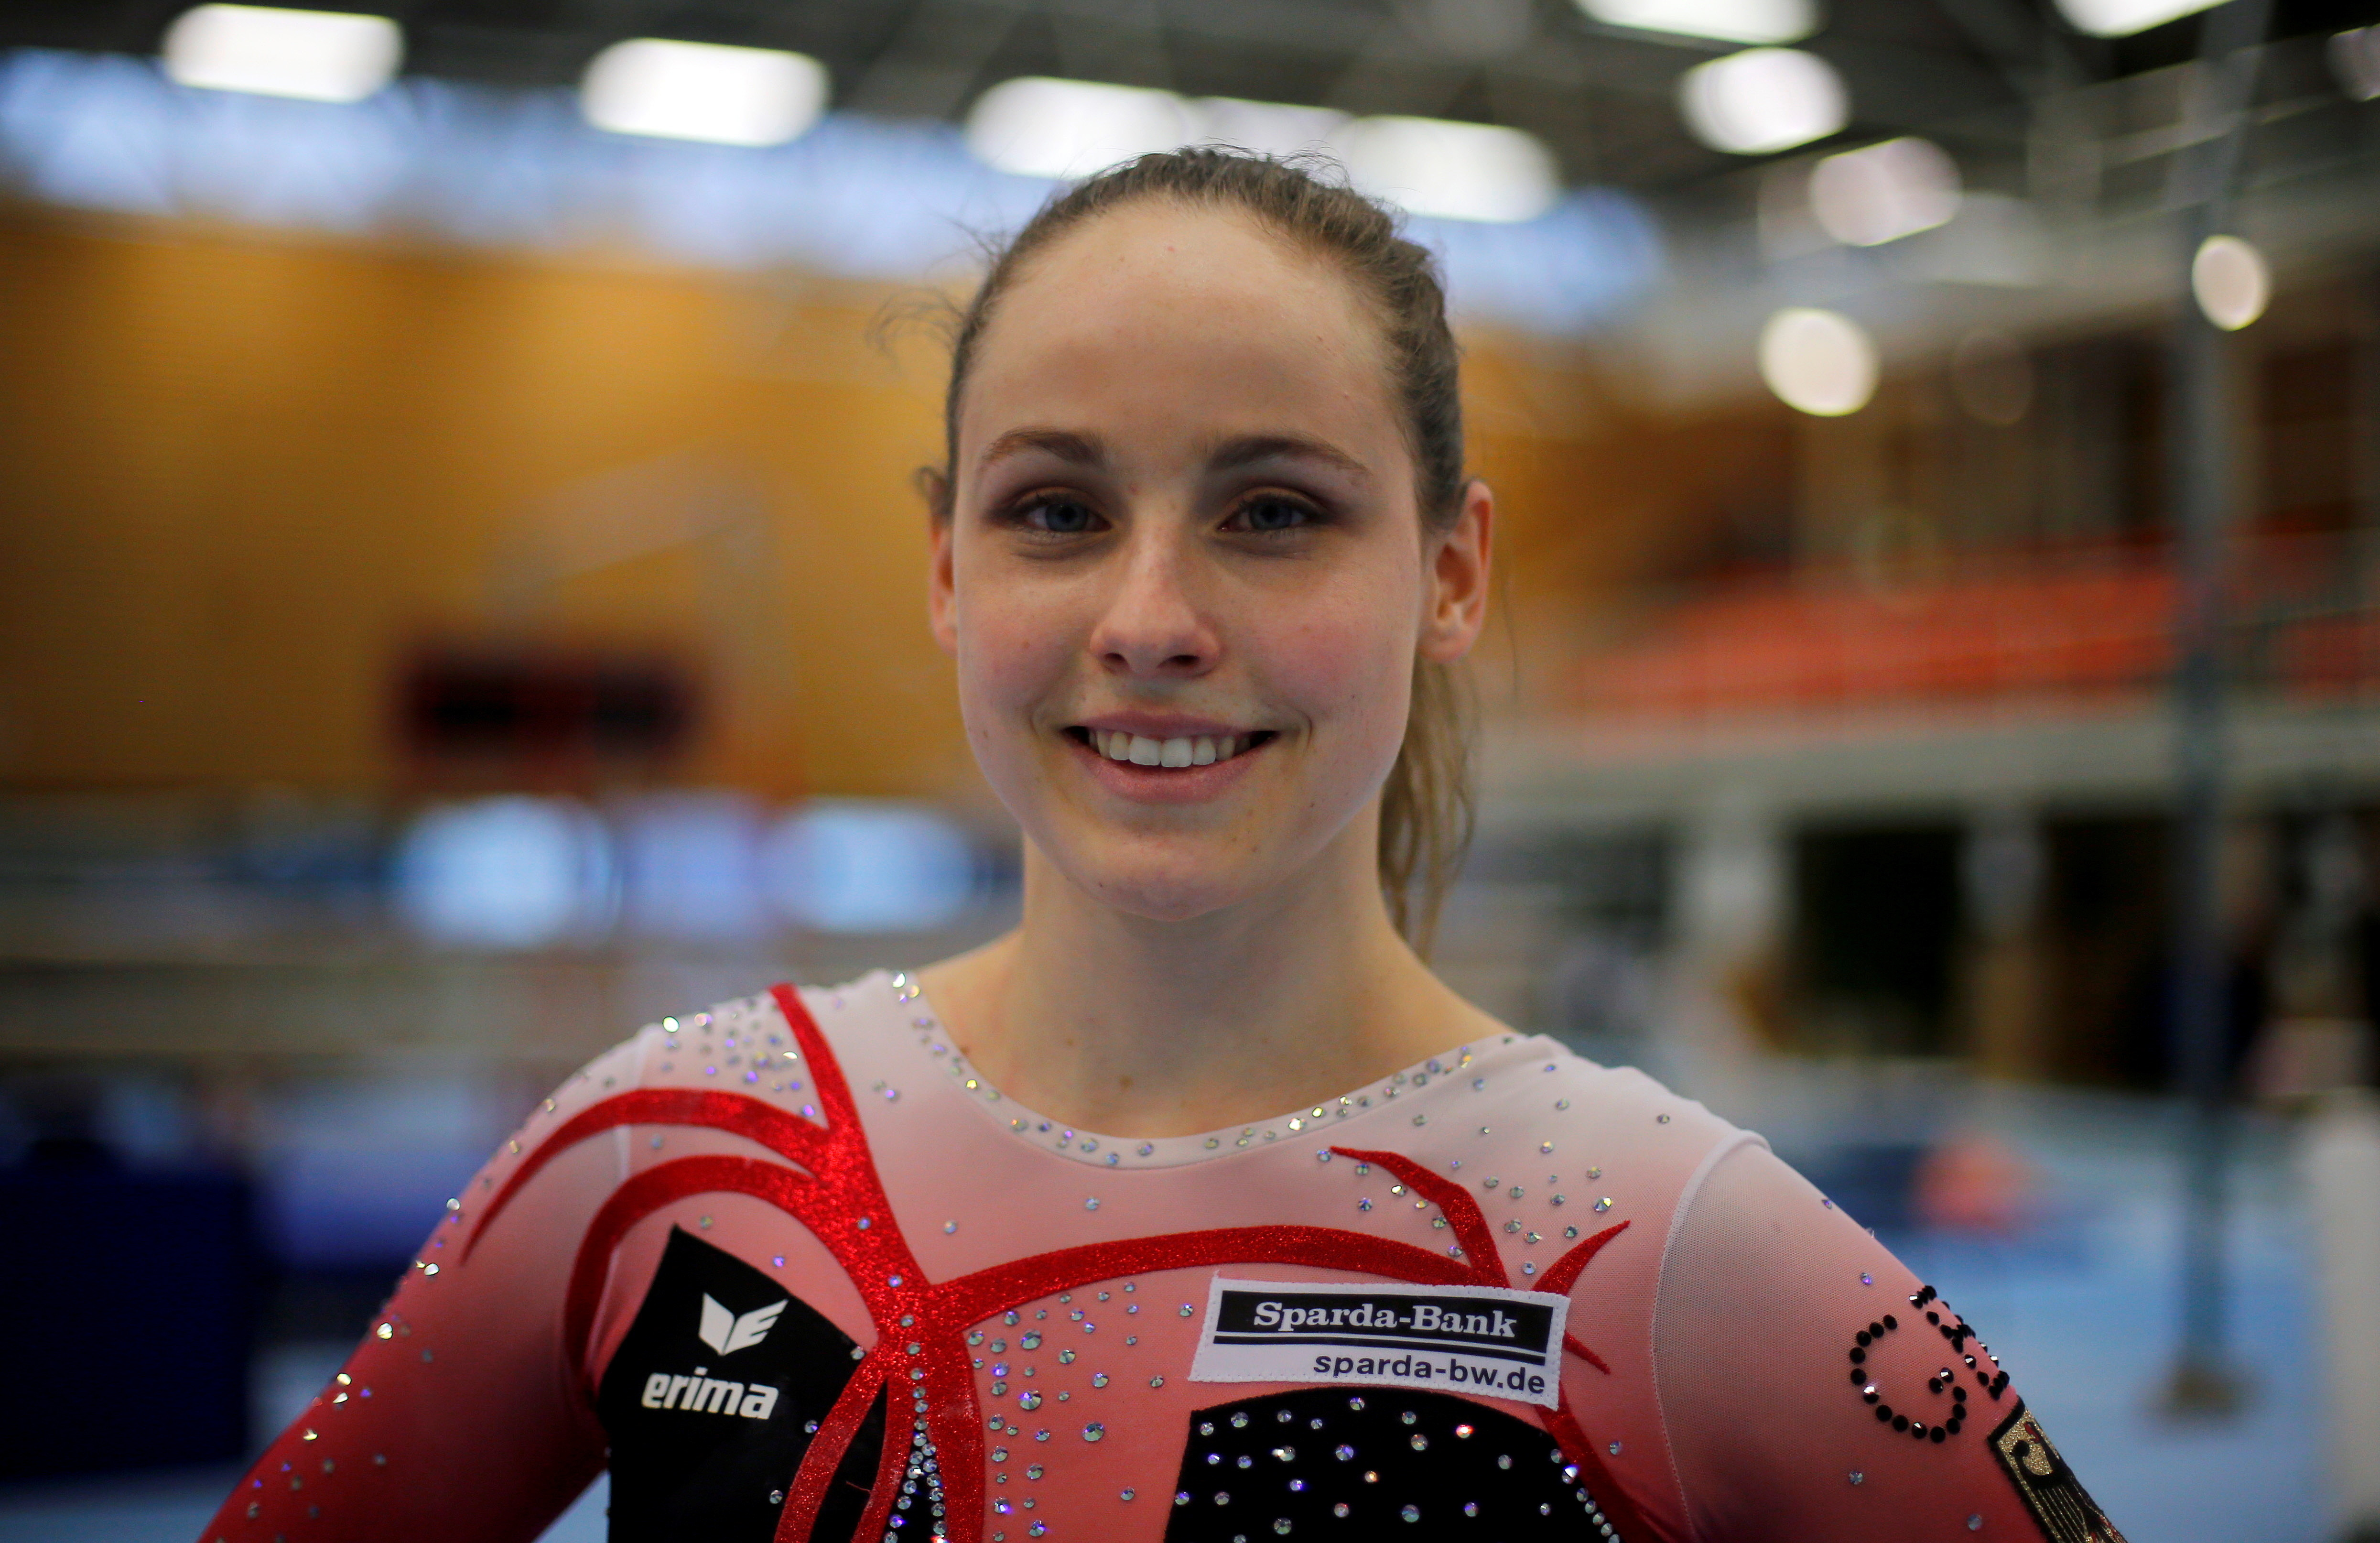 German artistic gymnast Sarah Voss poses for a picture in a full body suit during a training session in Cologne, Germany